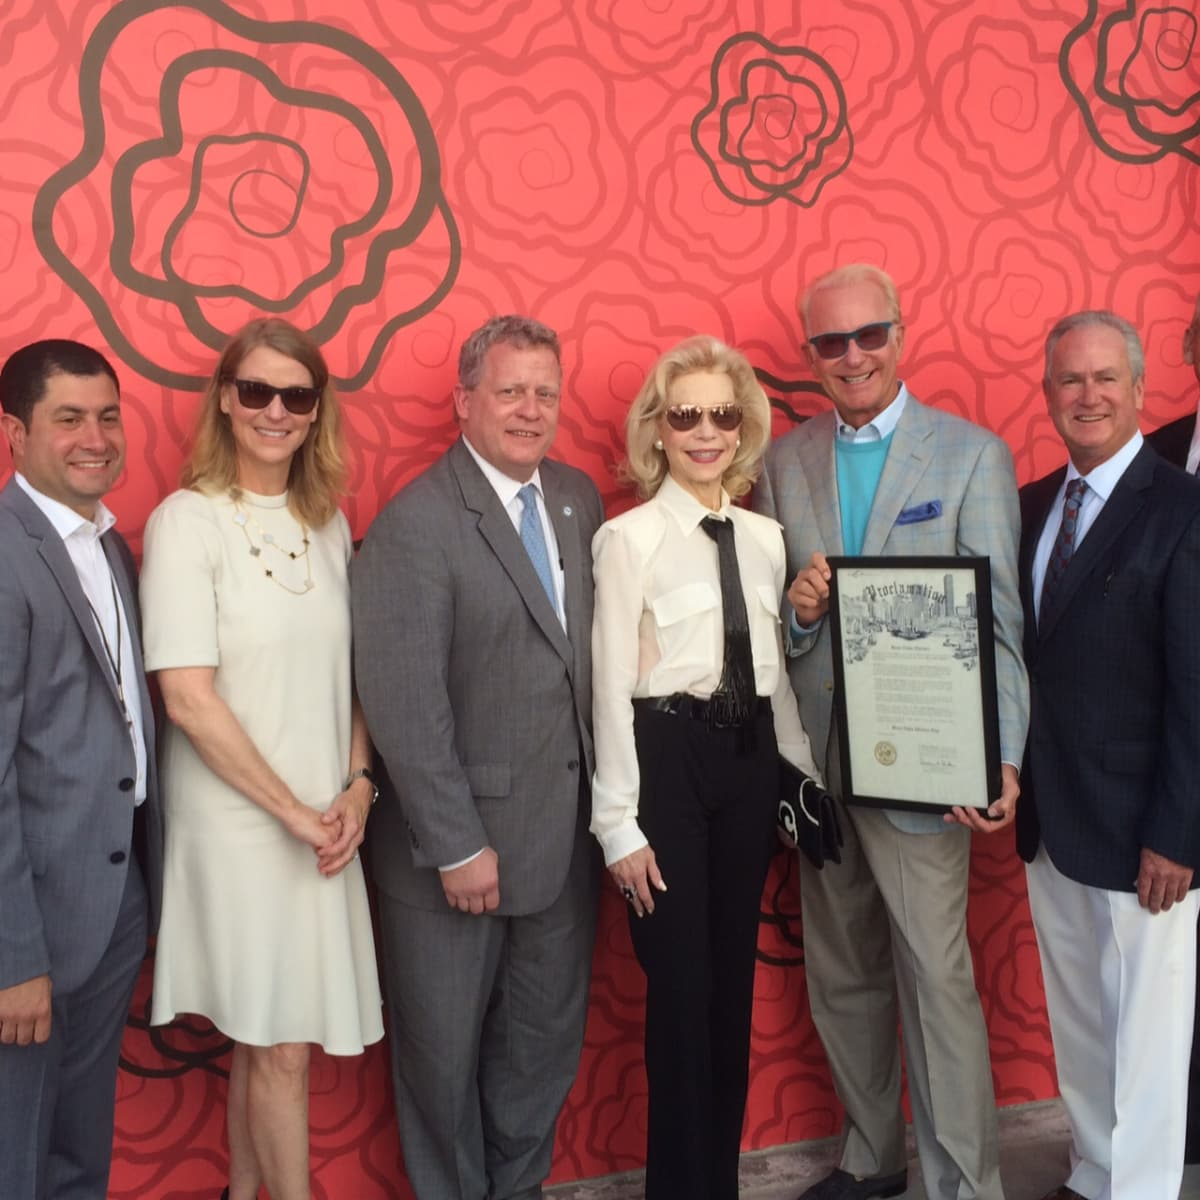 River Oaks District grand opening